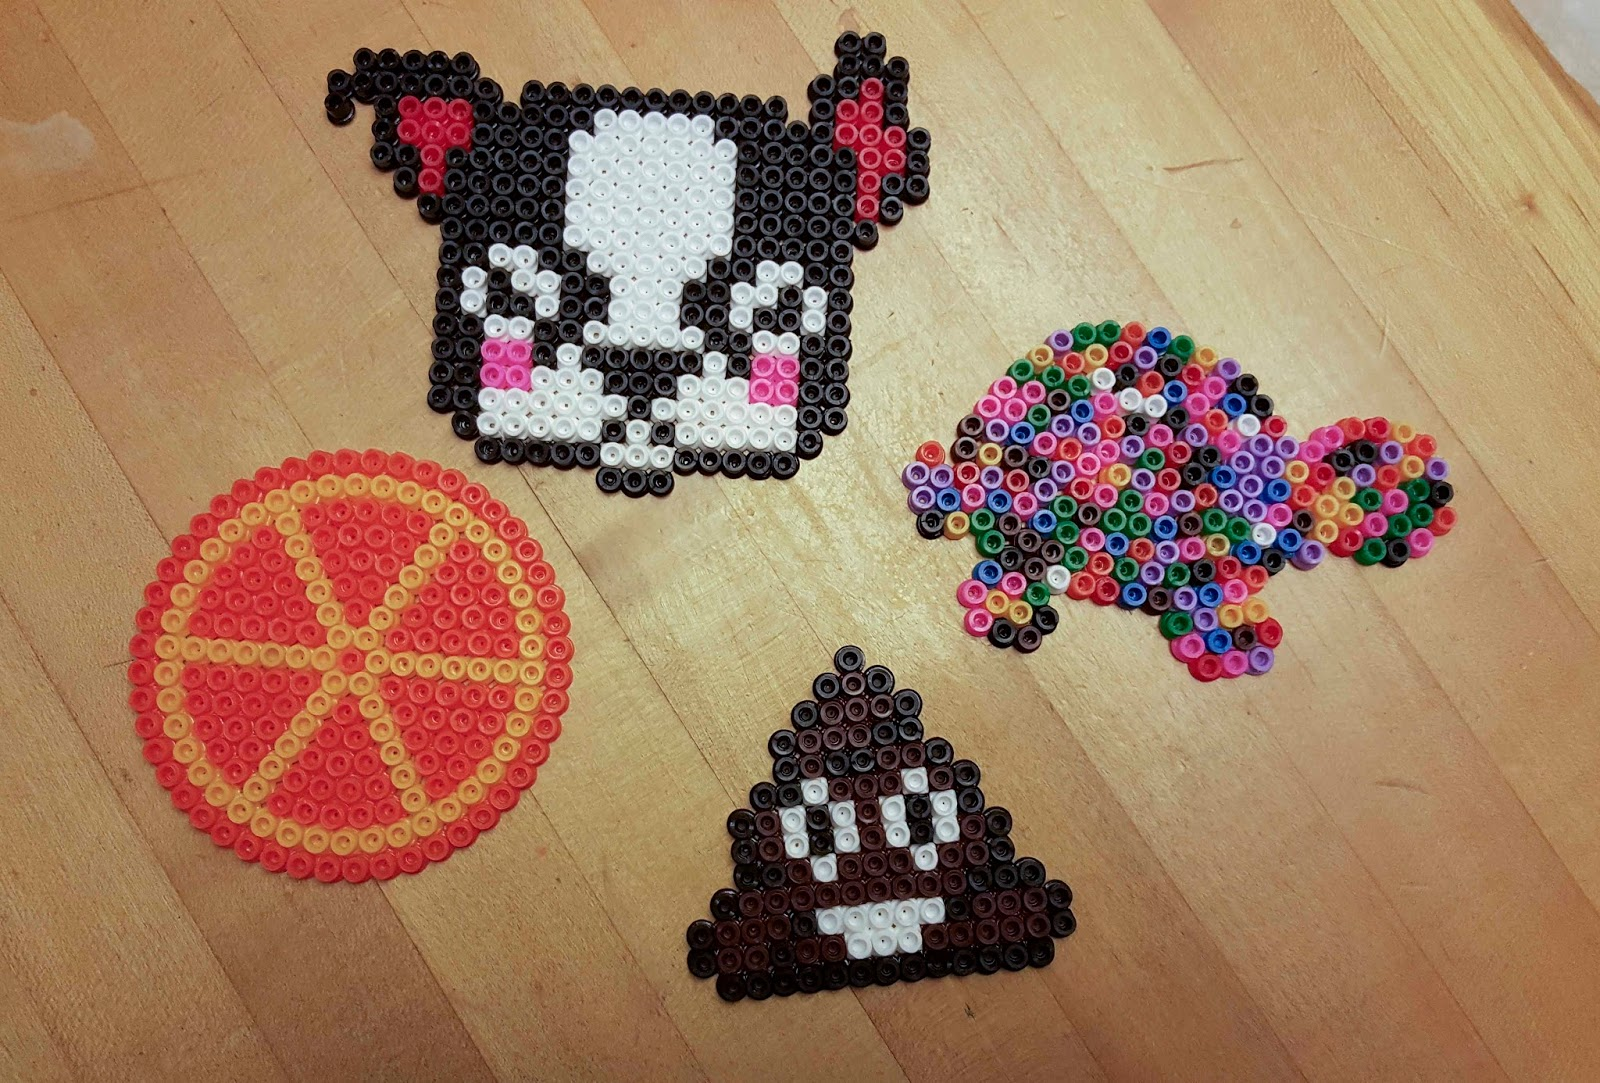 Pyssla Chemknits: Adventures With Perler And Pyssla Beads